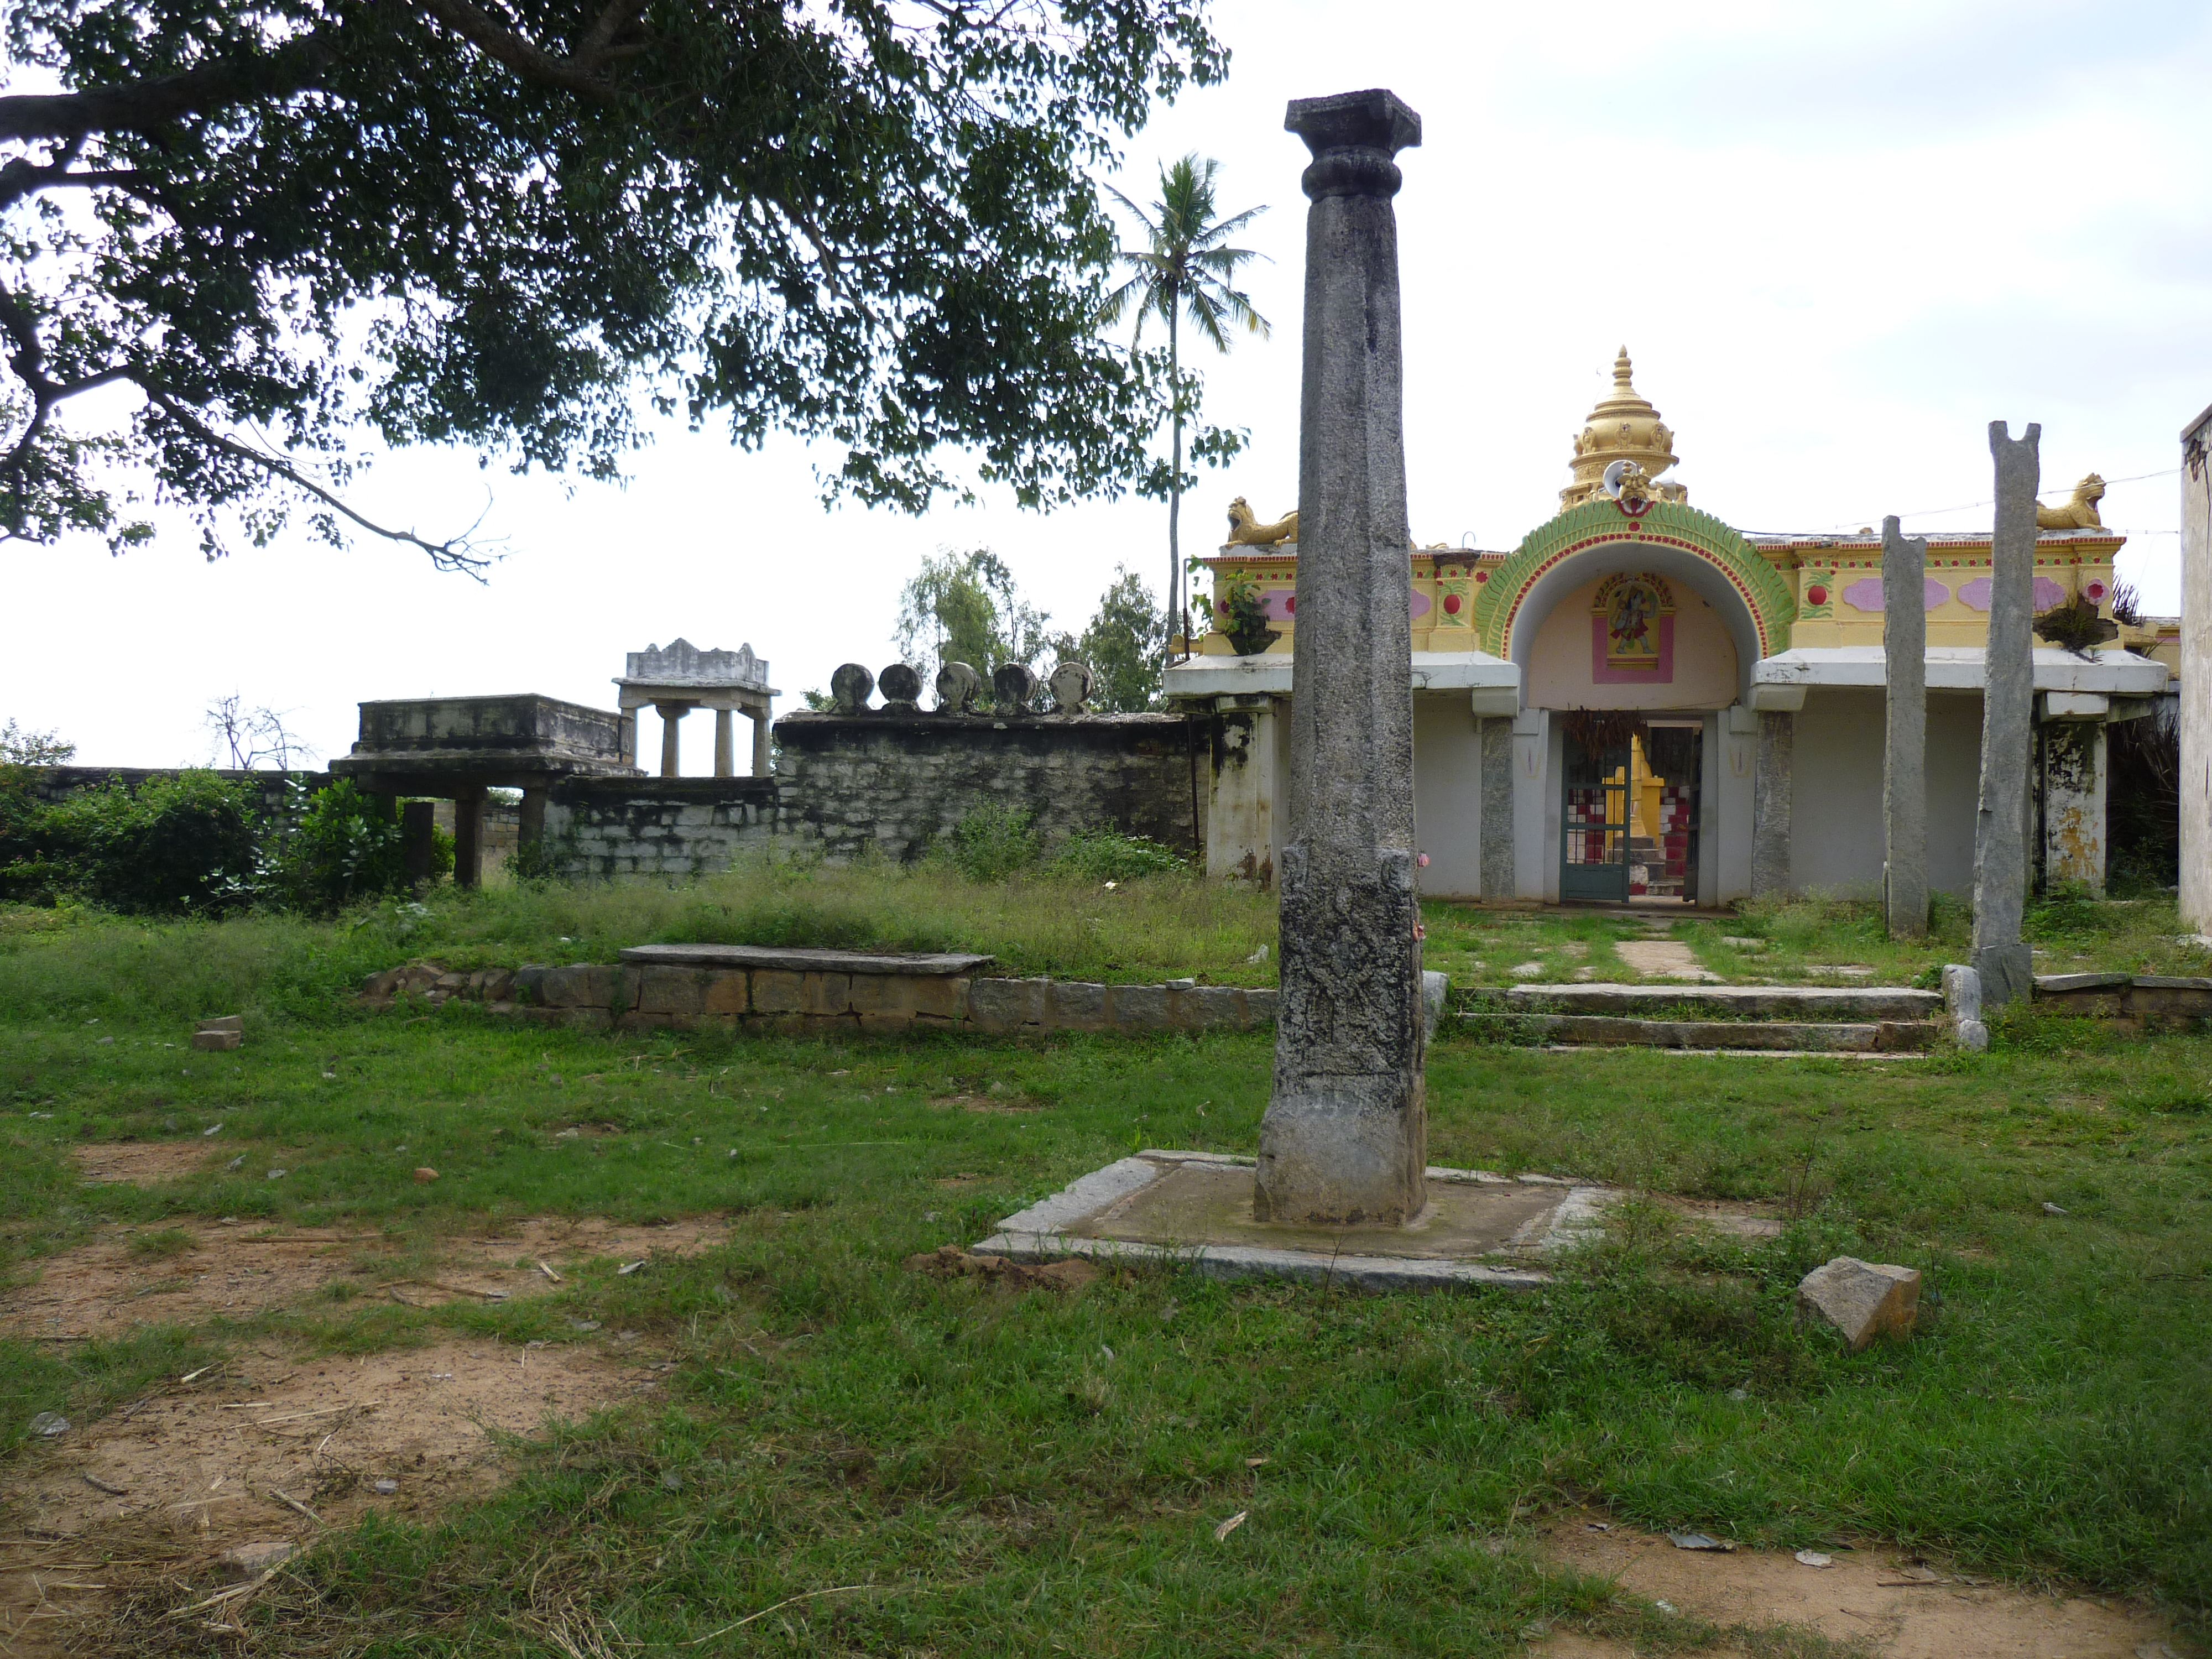 The Vishnu temple enroute to Devarabetta from Thally